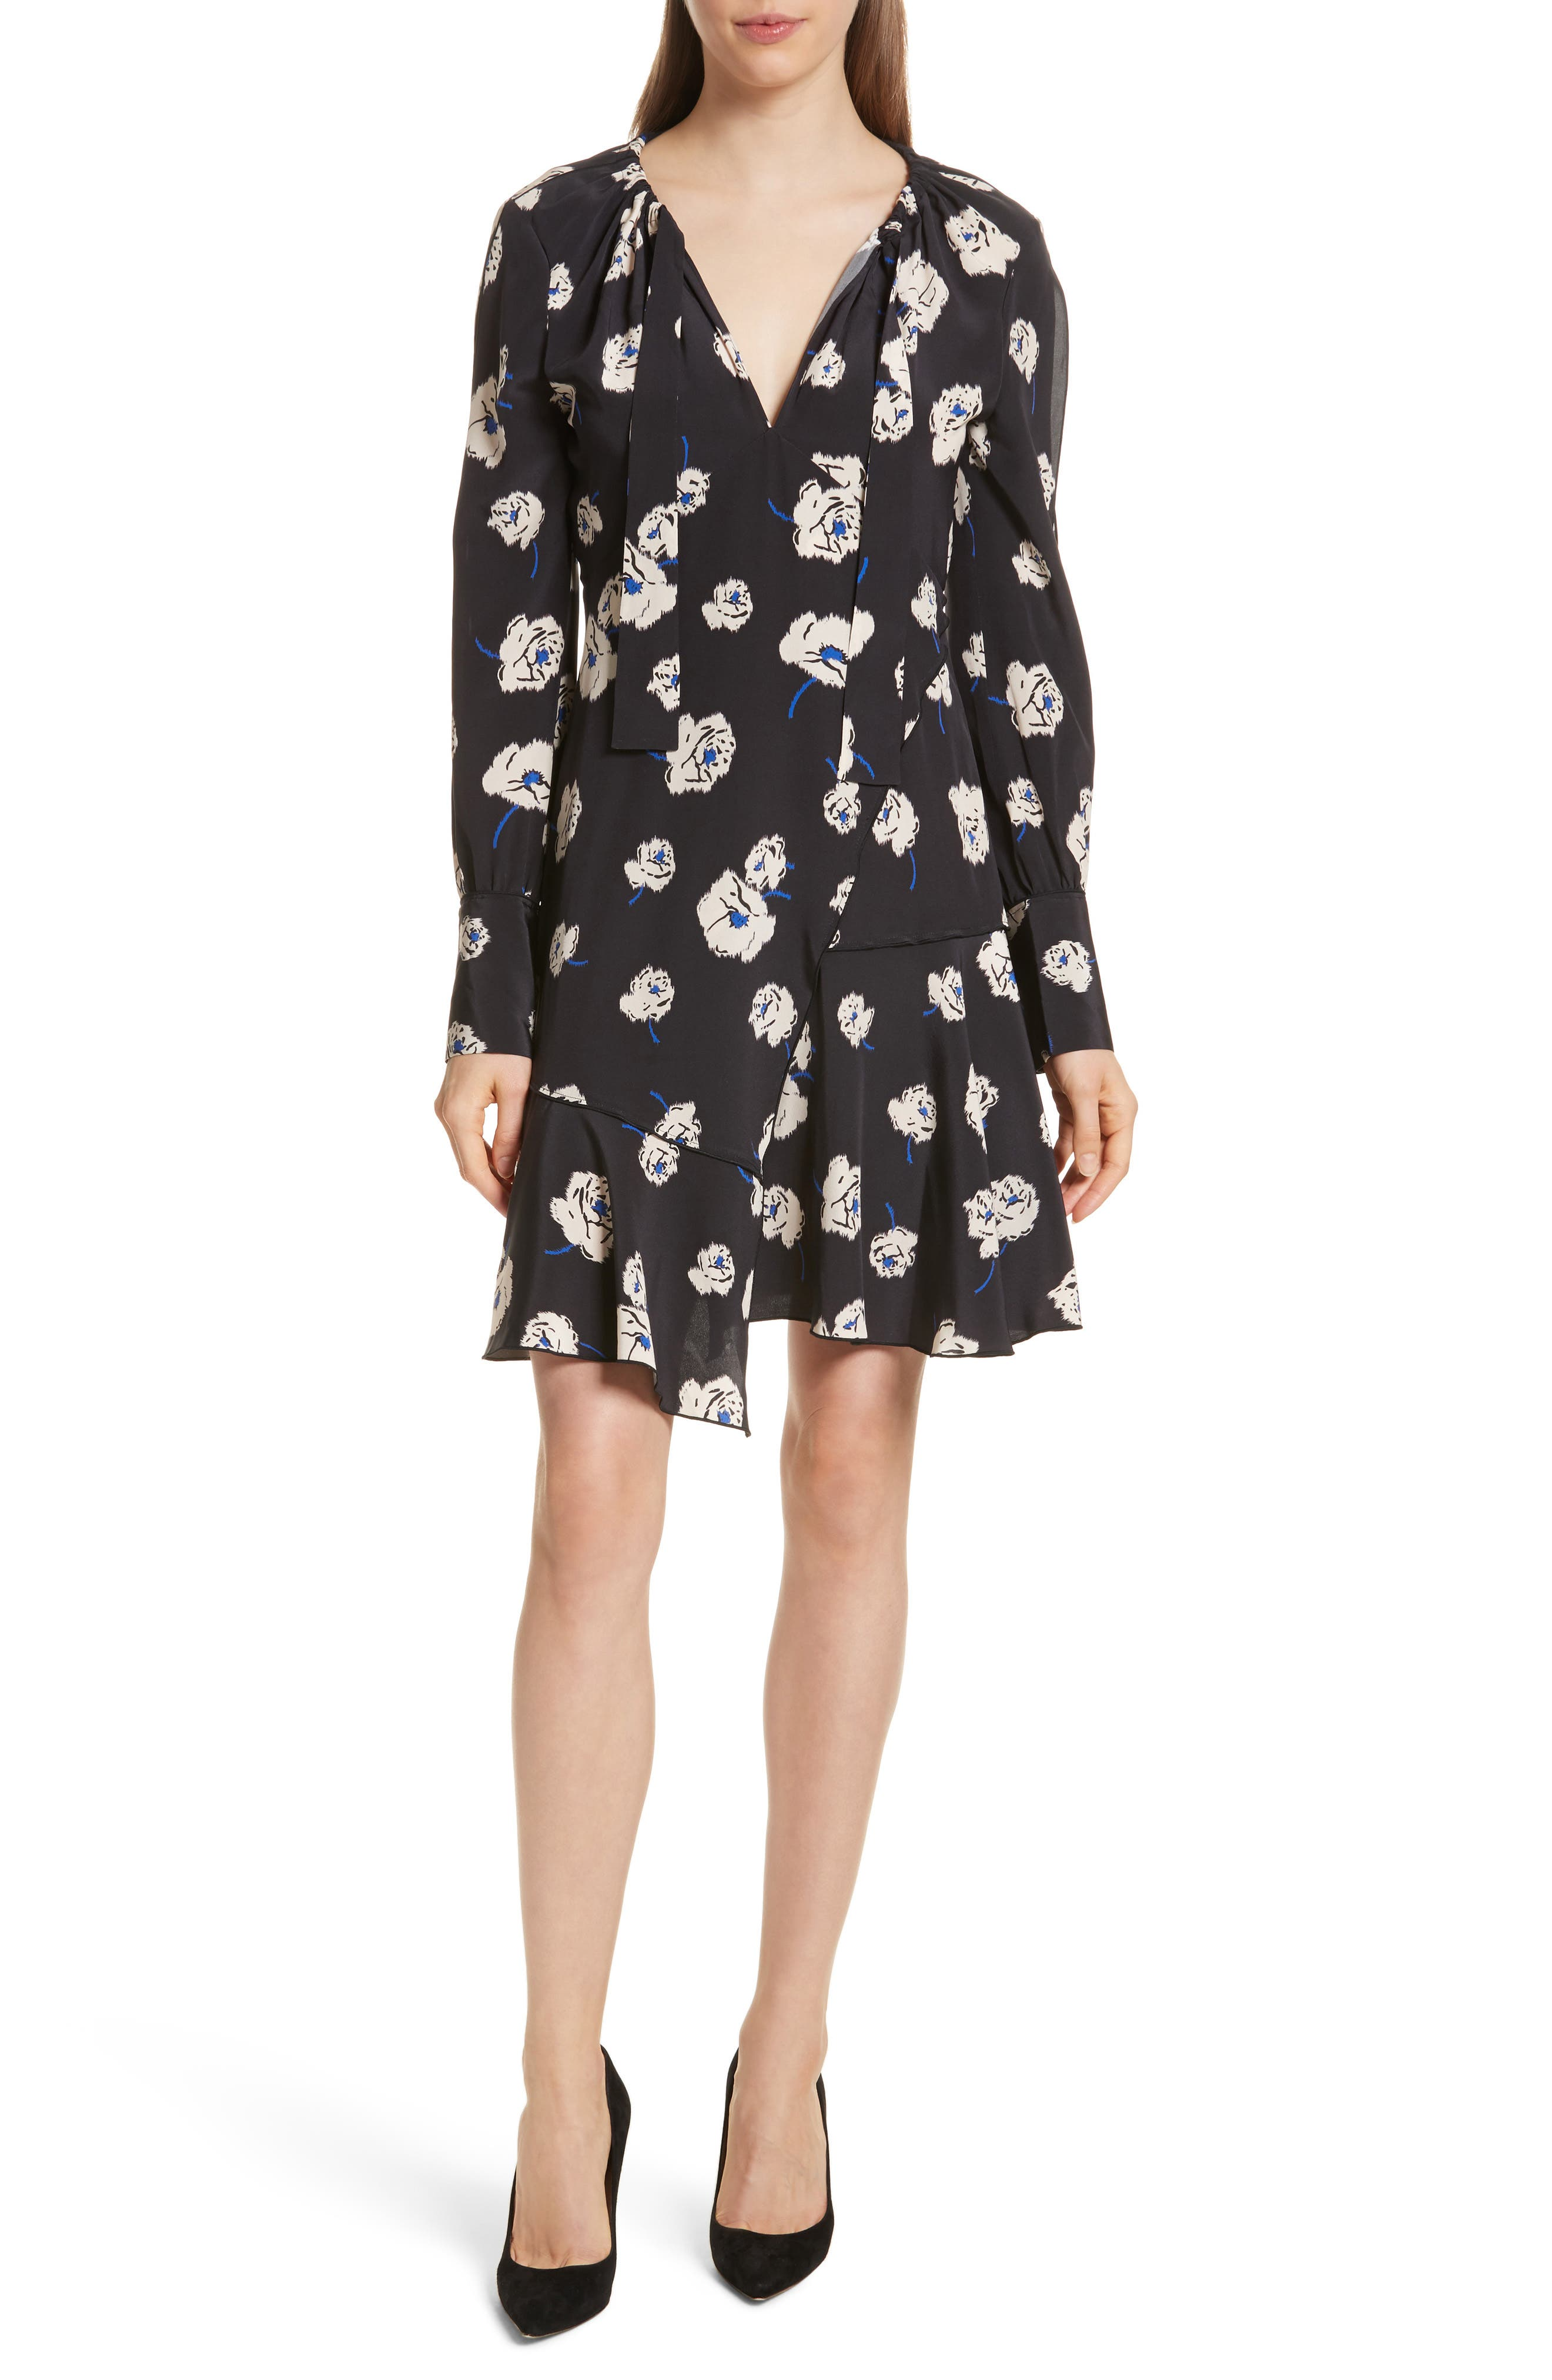 Derek Lam 10 Crosby Floral Ruffle Silk Dress